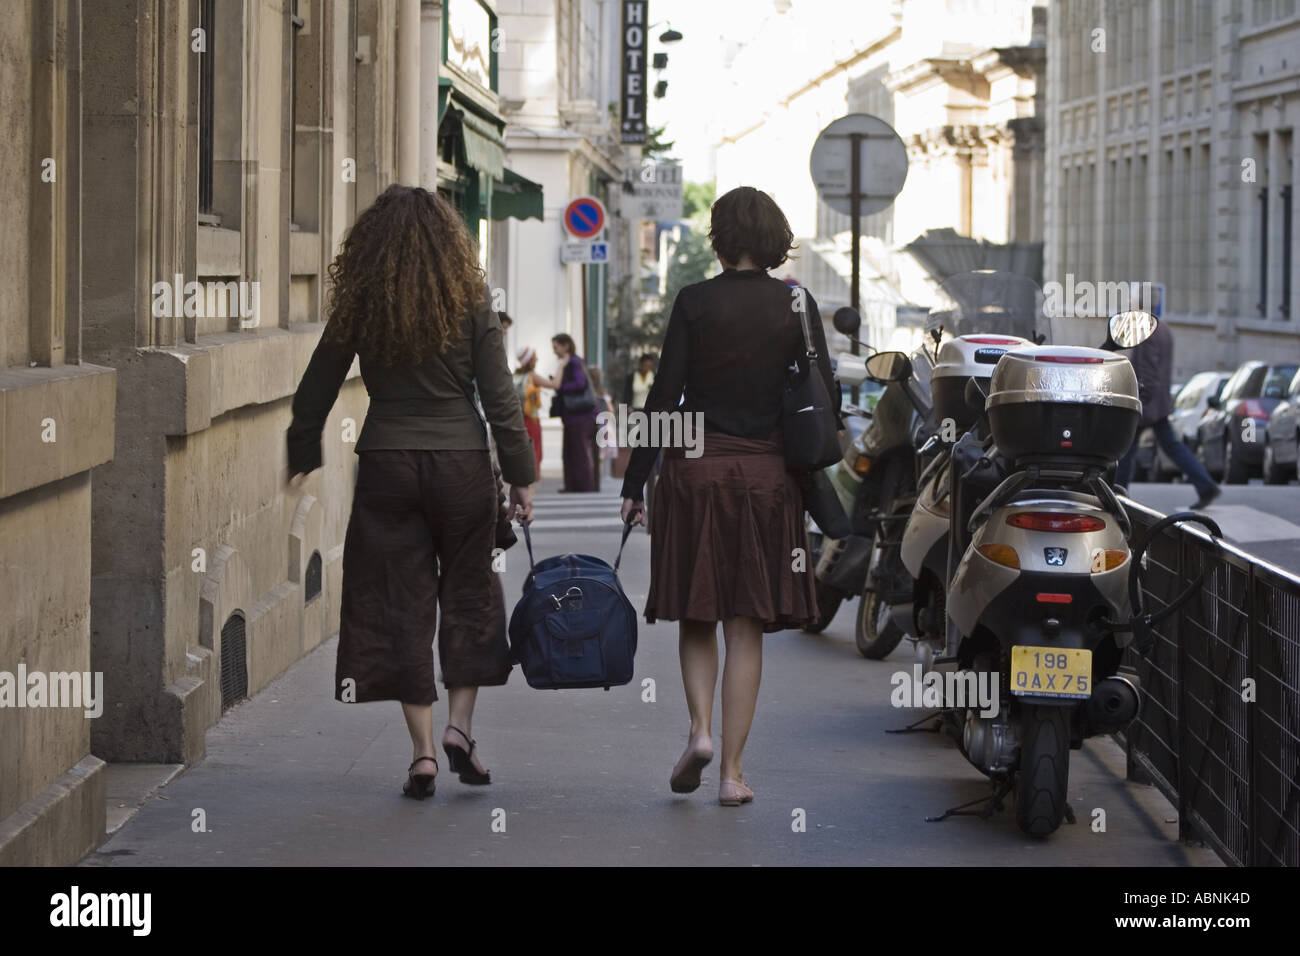 Two women carrying a bag between them near the Sorbonne Paris France - Stock Image